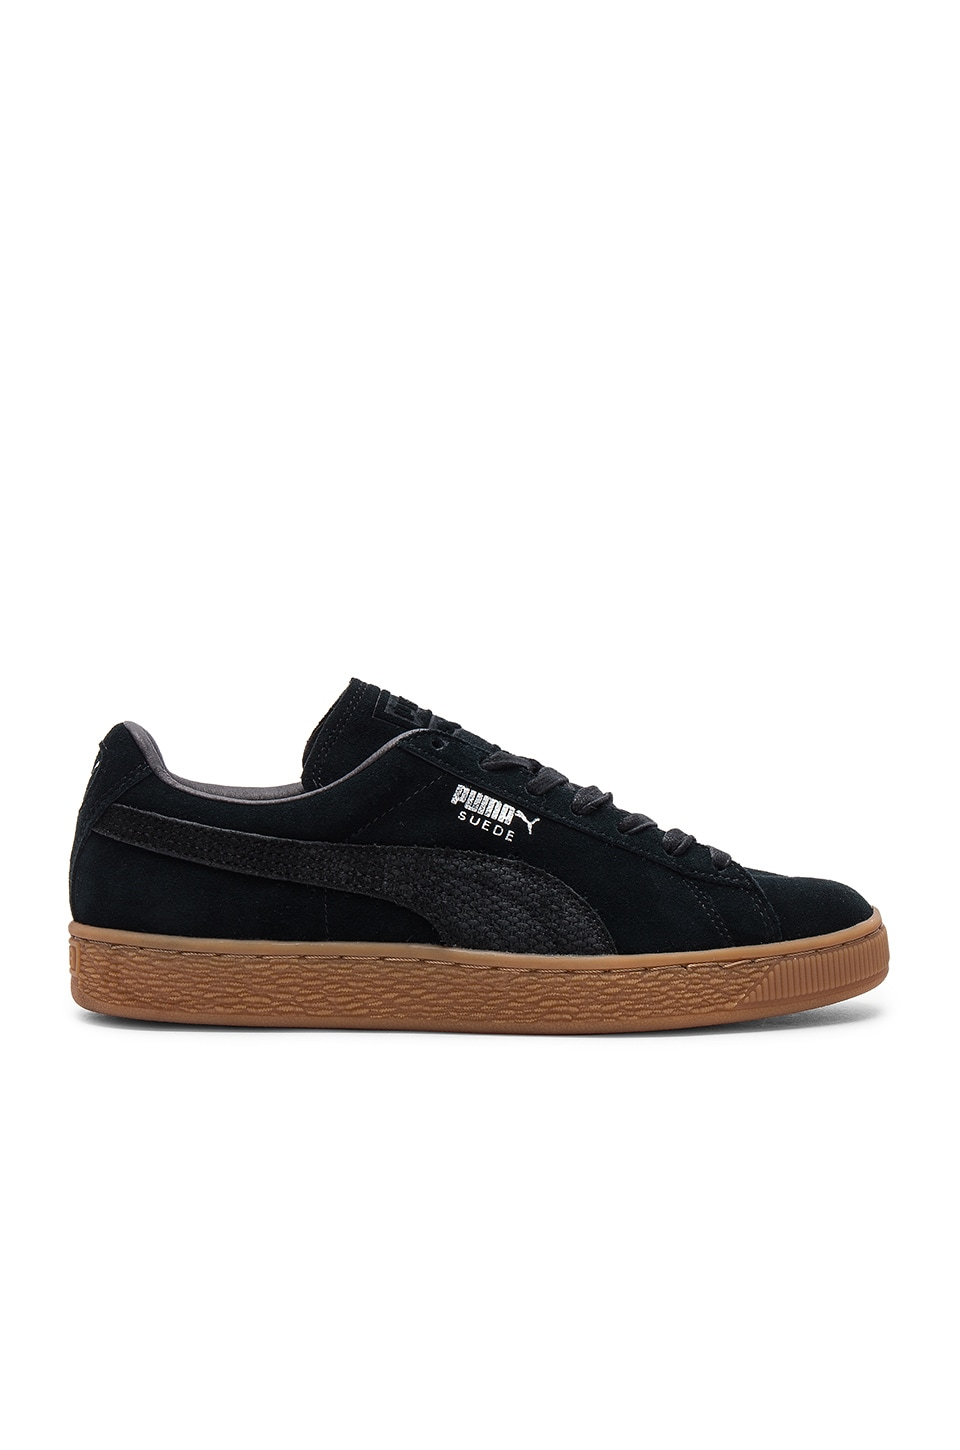 Suede Classic Citi by Puma Select